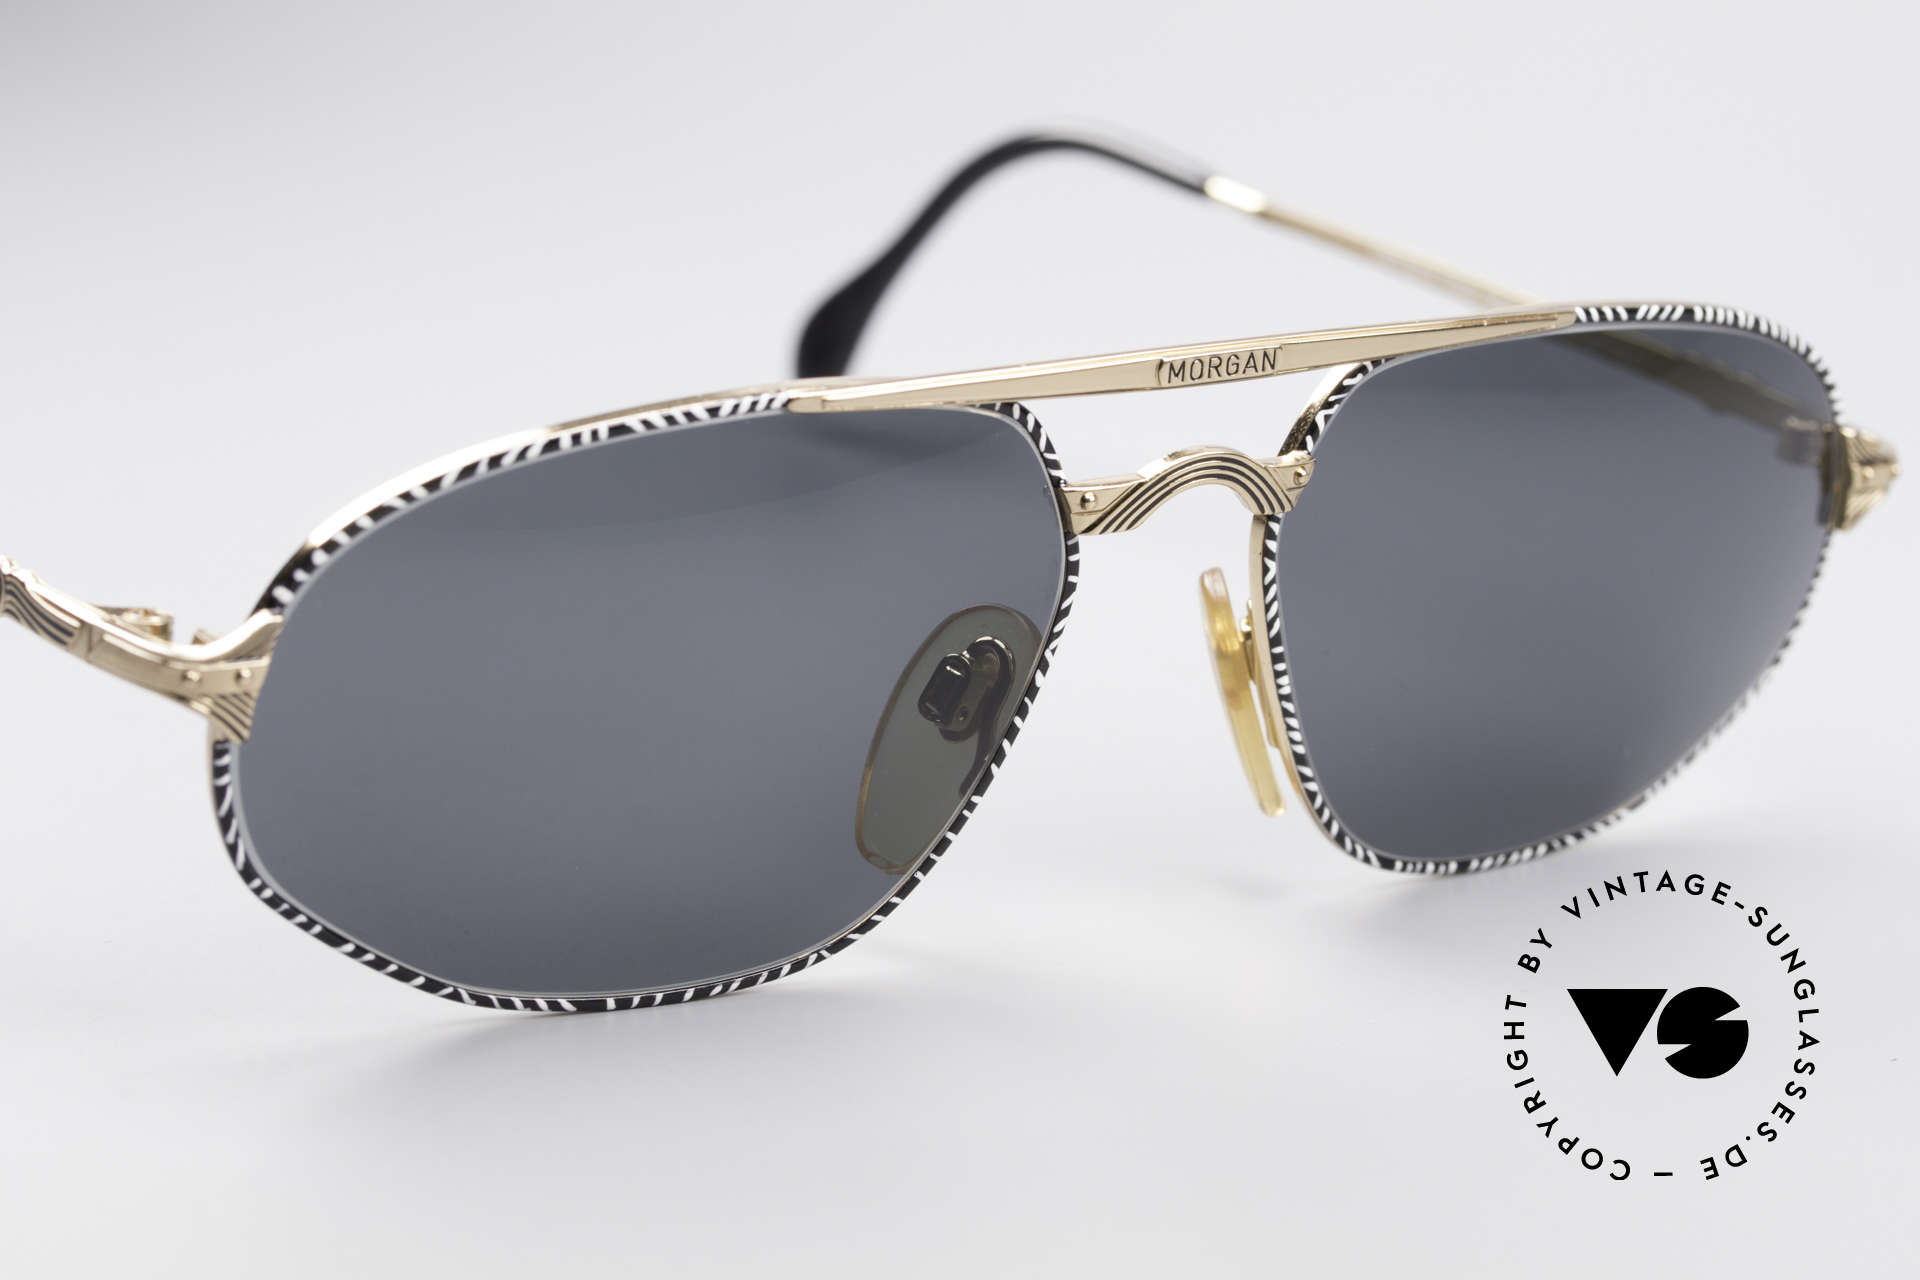 Morgan Motors 804 Oldtimer Sunglasses, unworn, N.O.S. (like all our antique collectors items), Made for Men